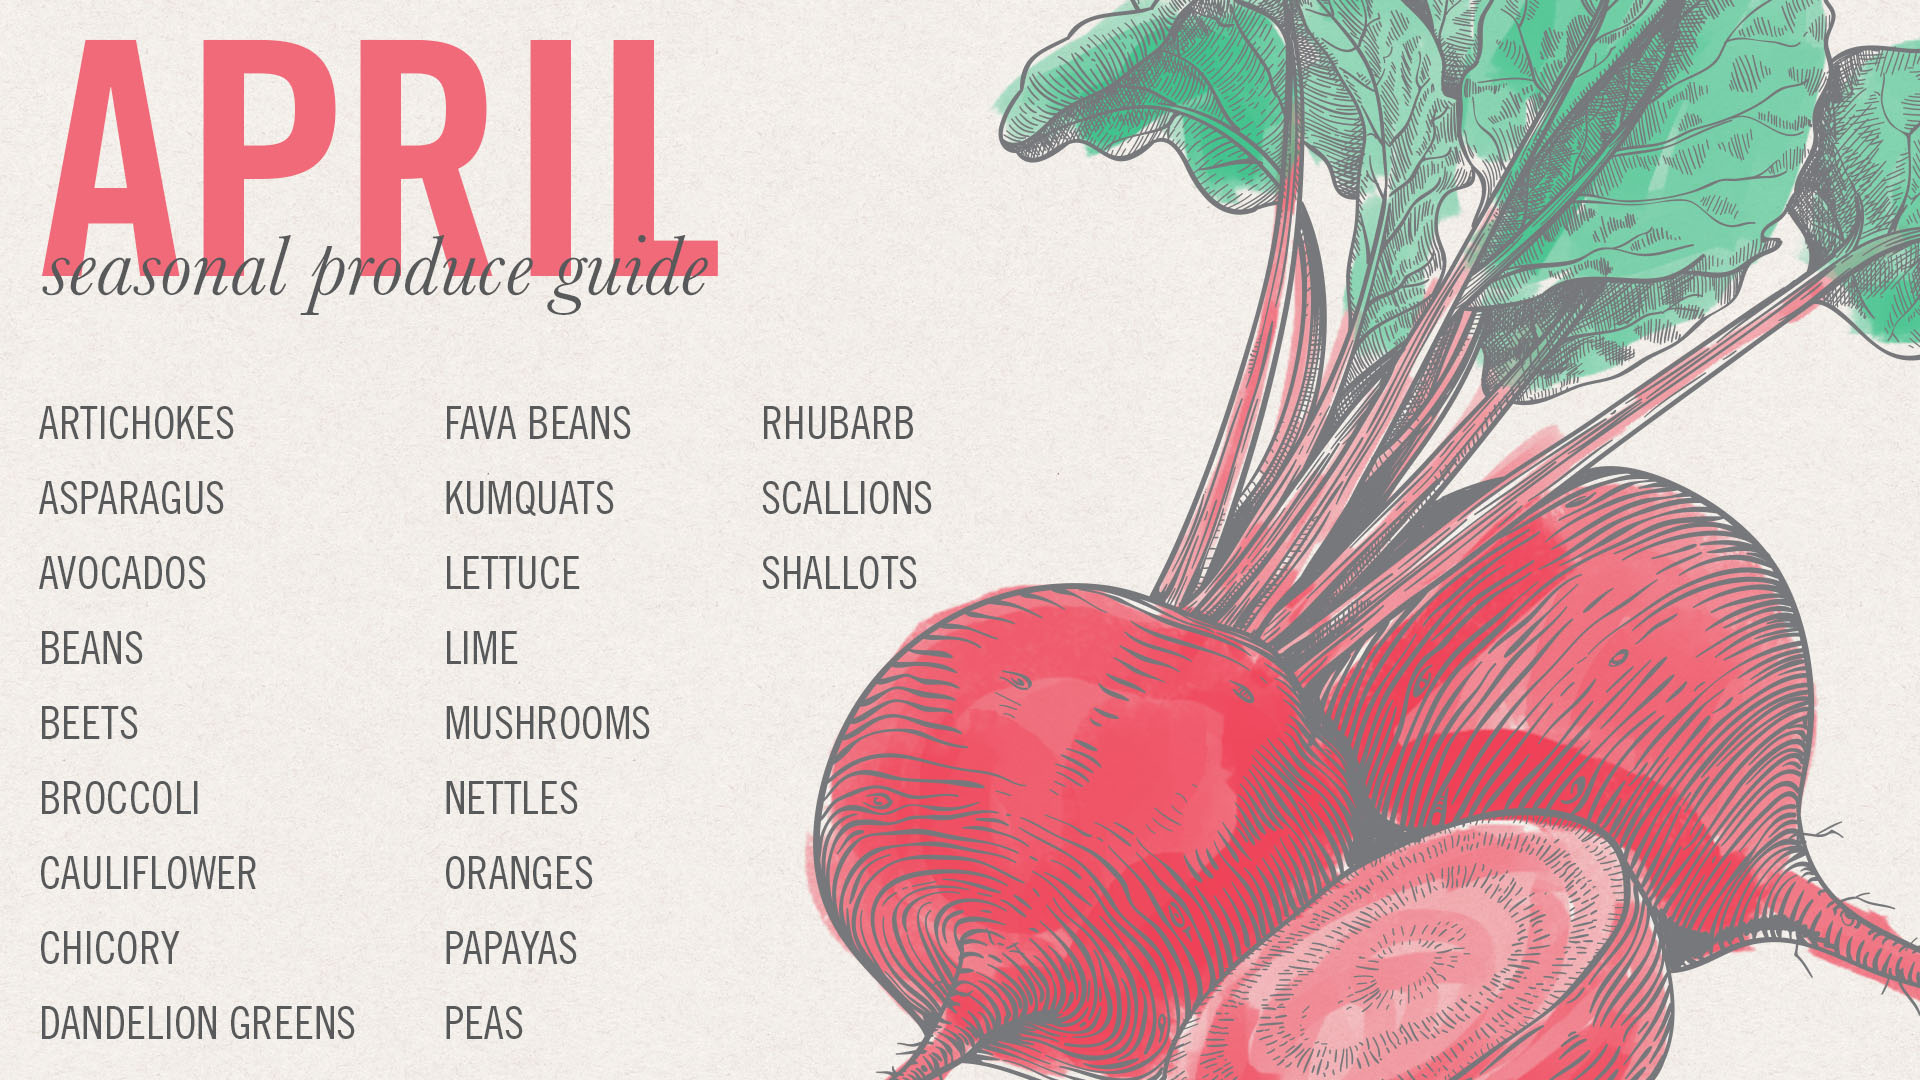 April Seasonal Produce Guide • theVintageMixer.com #eatseasonal